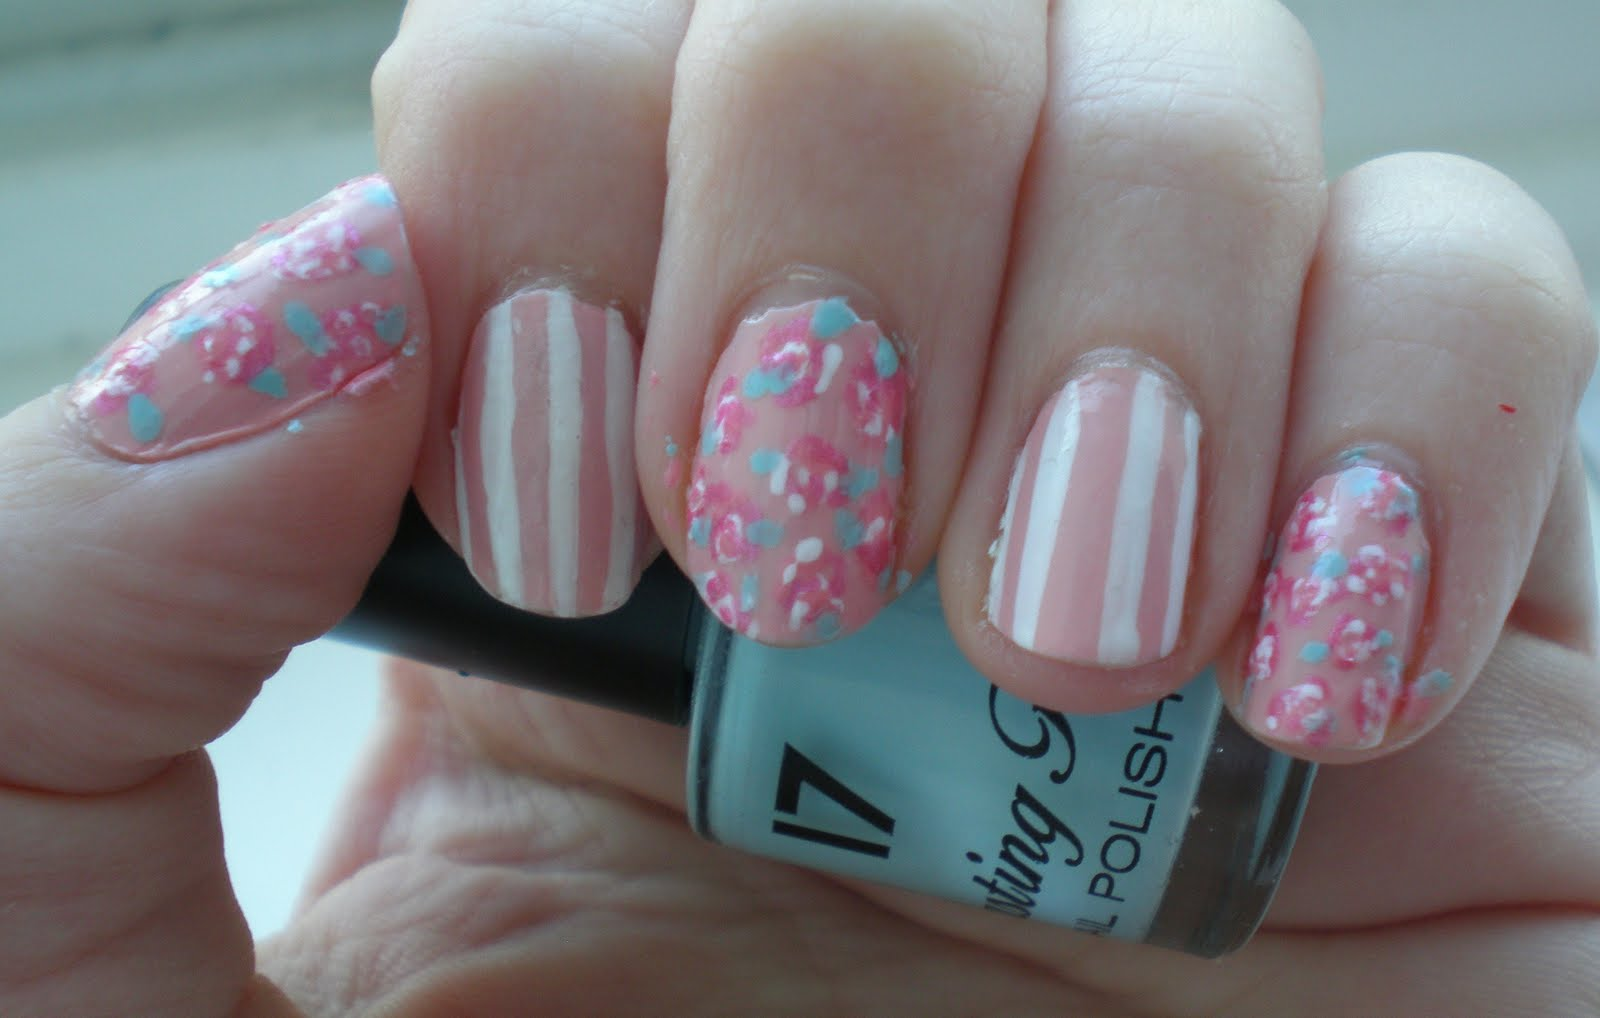 The Sleepy Magpie: Floral and striped nails - Nail art attempt #3!